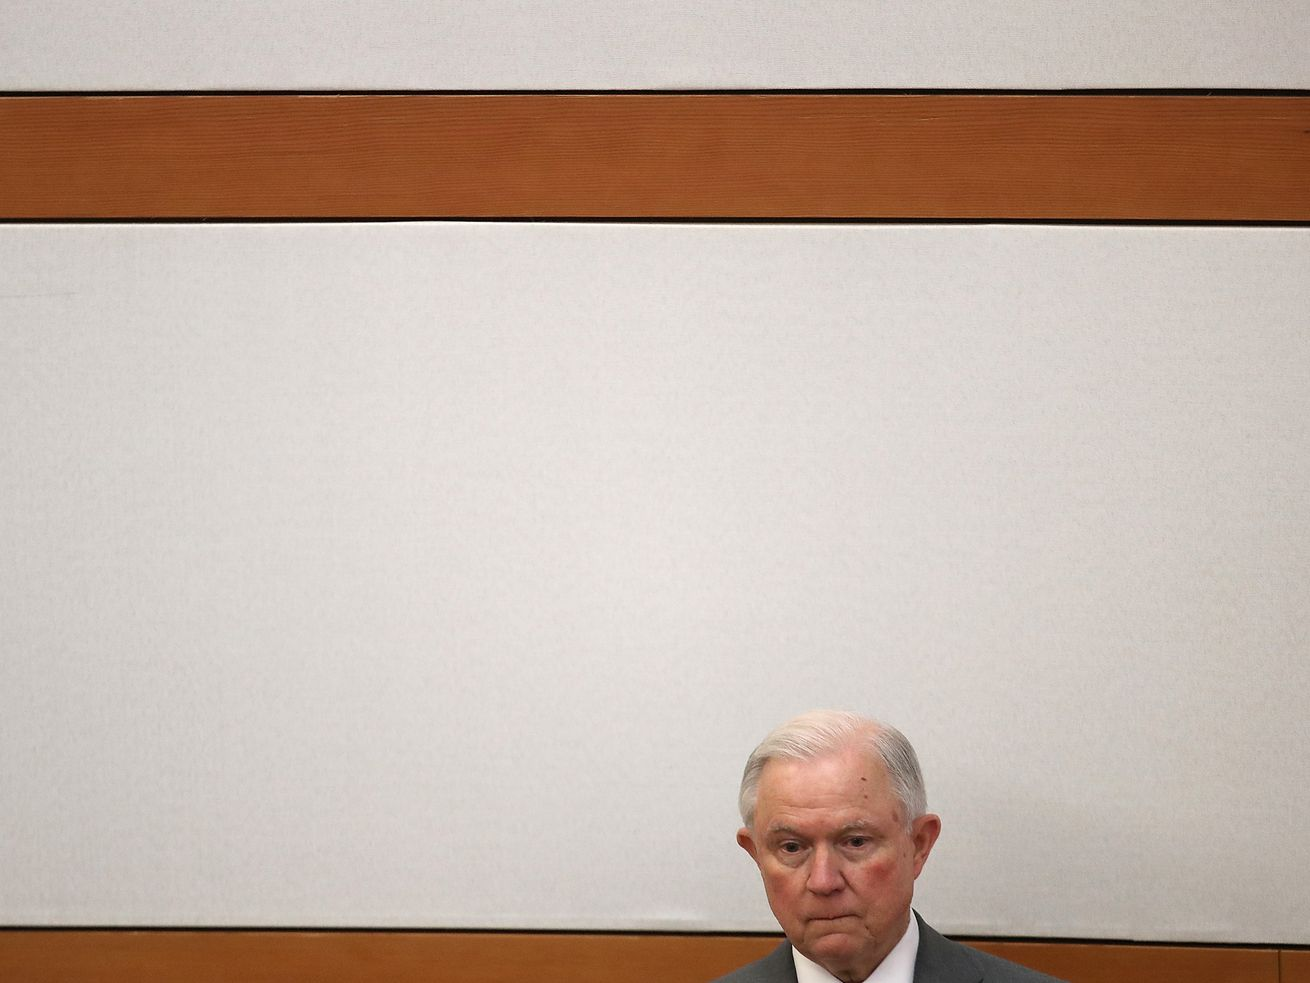 Jeff Sessions in September 2018. His days as attorney general may be numbered.